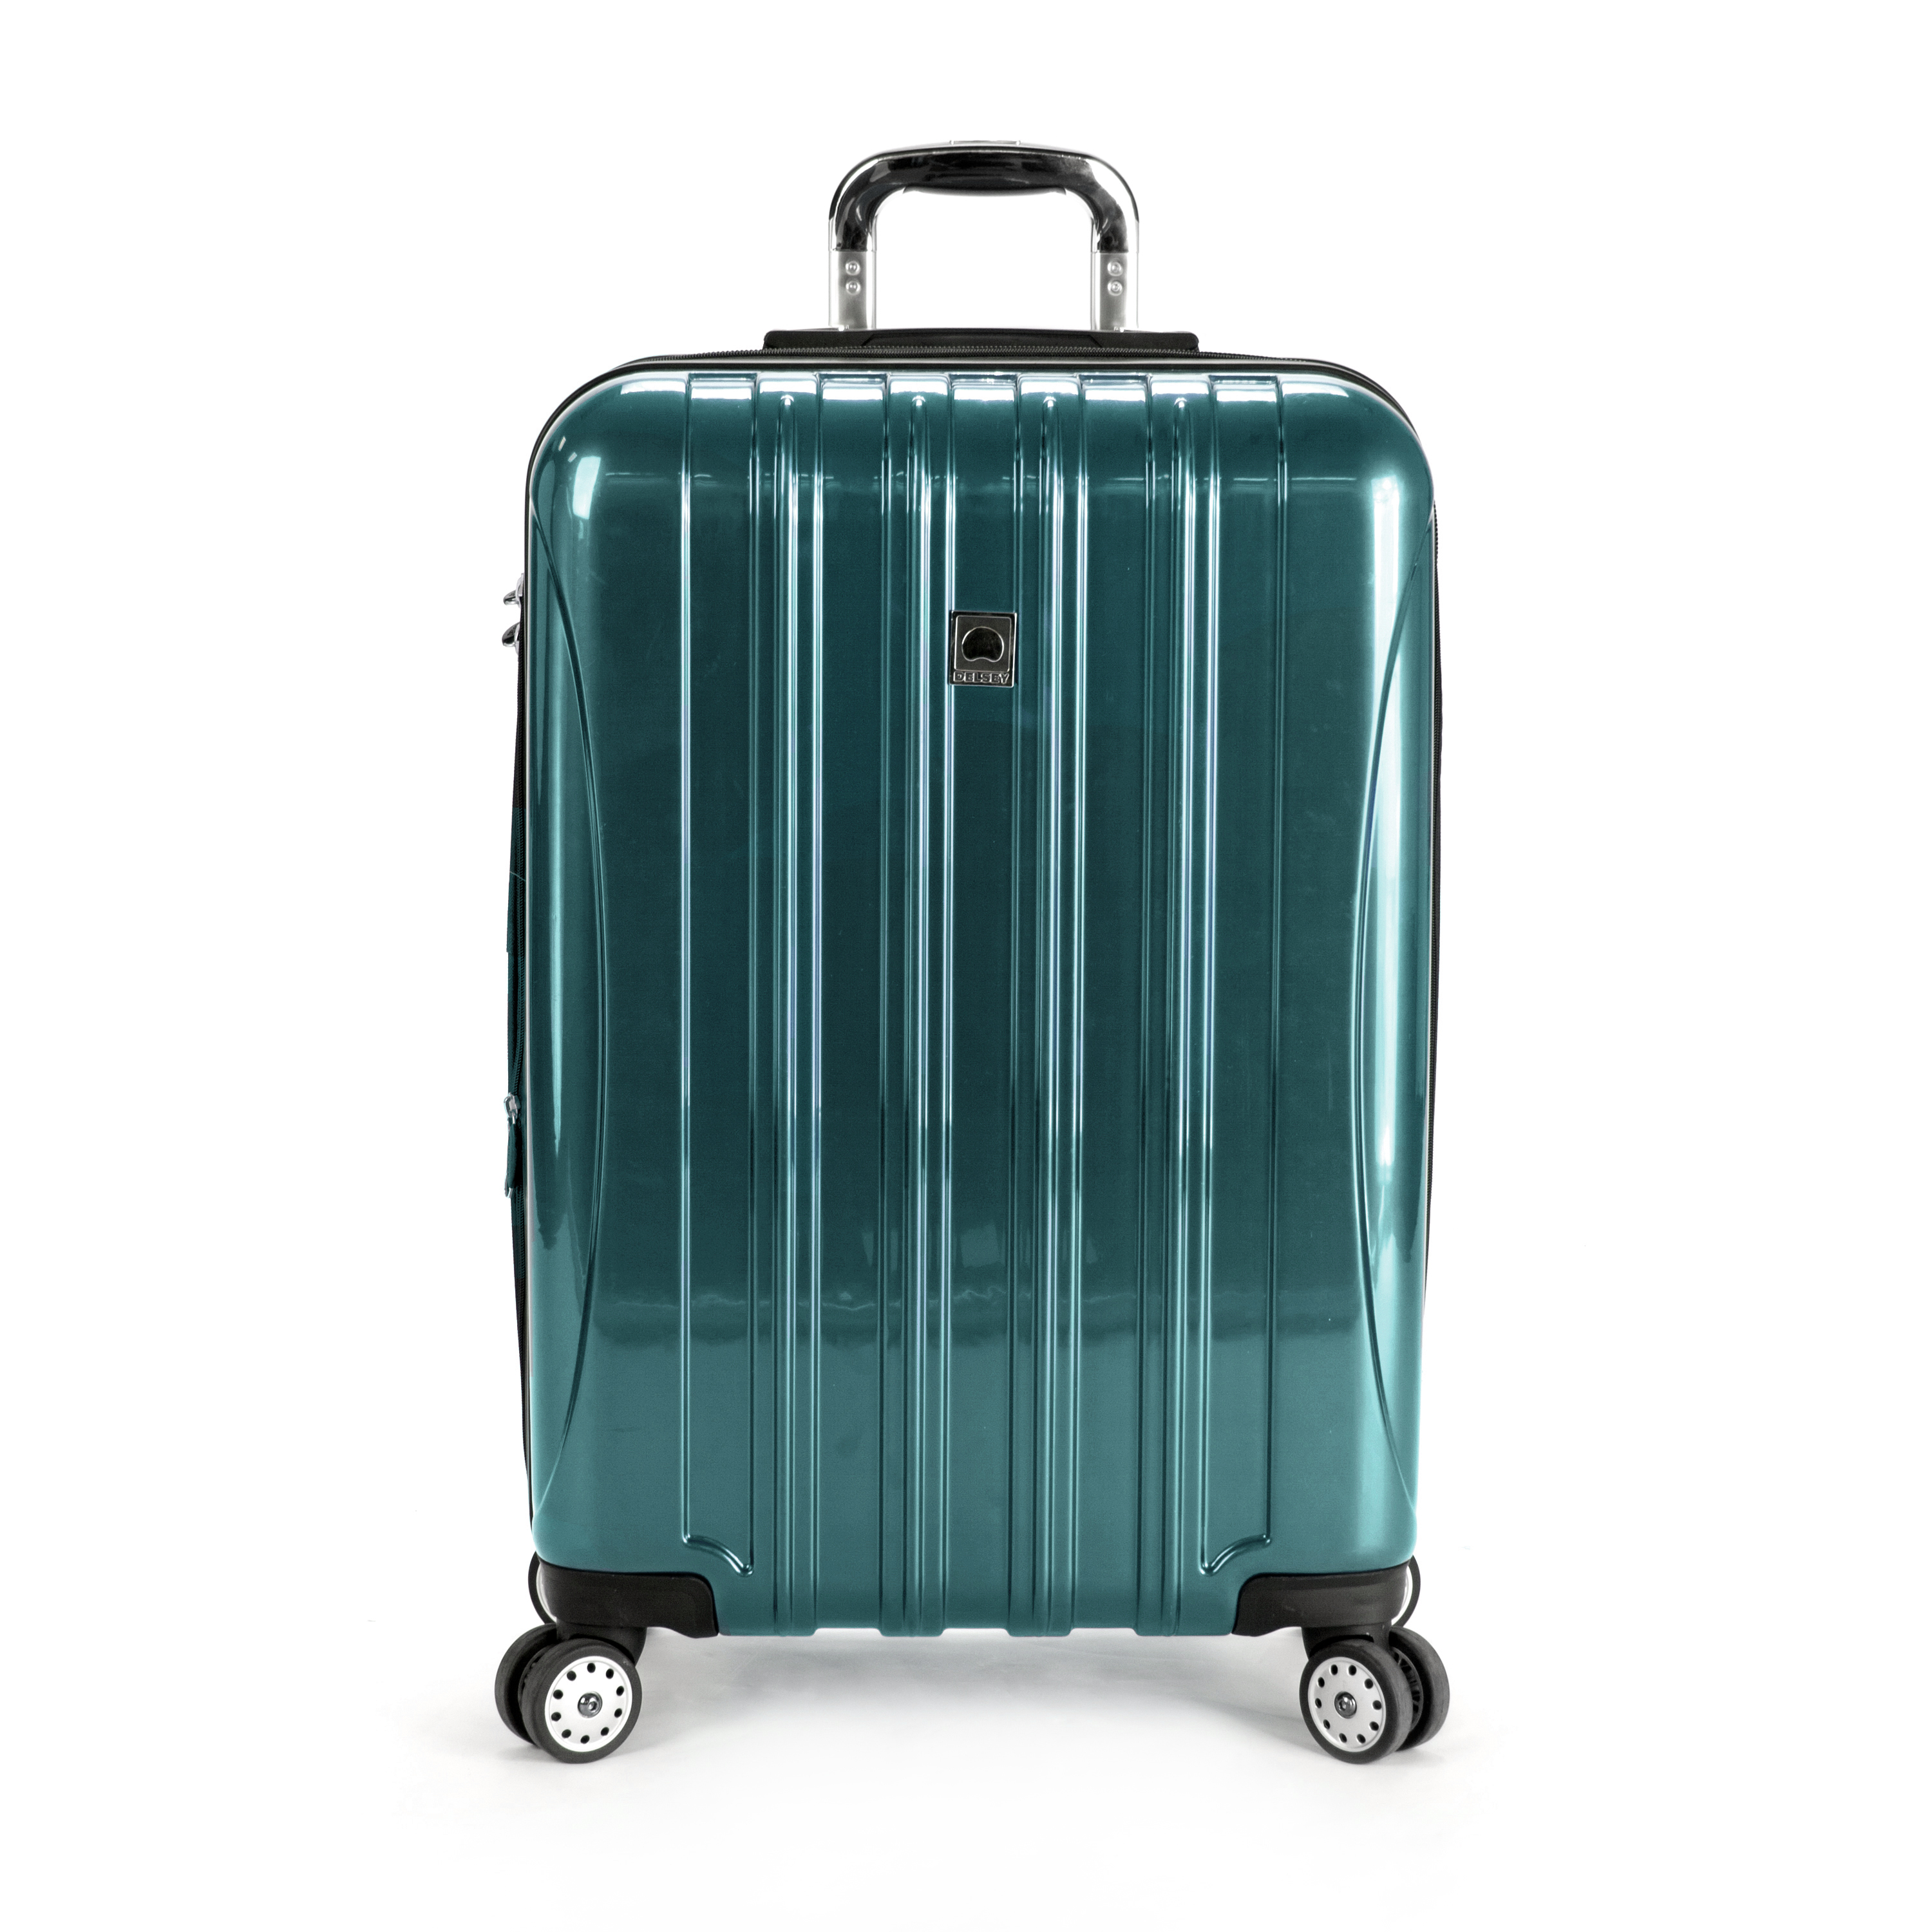 delsey luggage helium aero 3 piece spinner luggage set martlocal. Black Bedroom Furniture Sets. Home Design Ideas